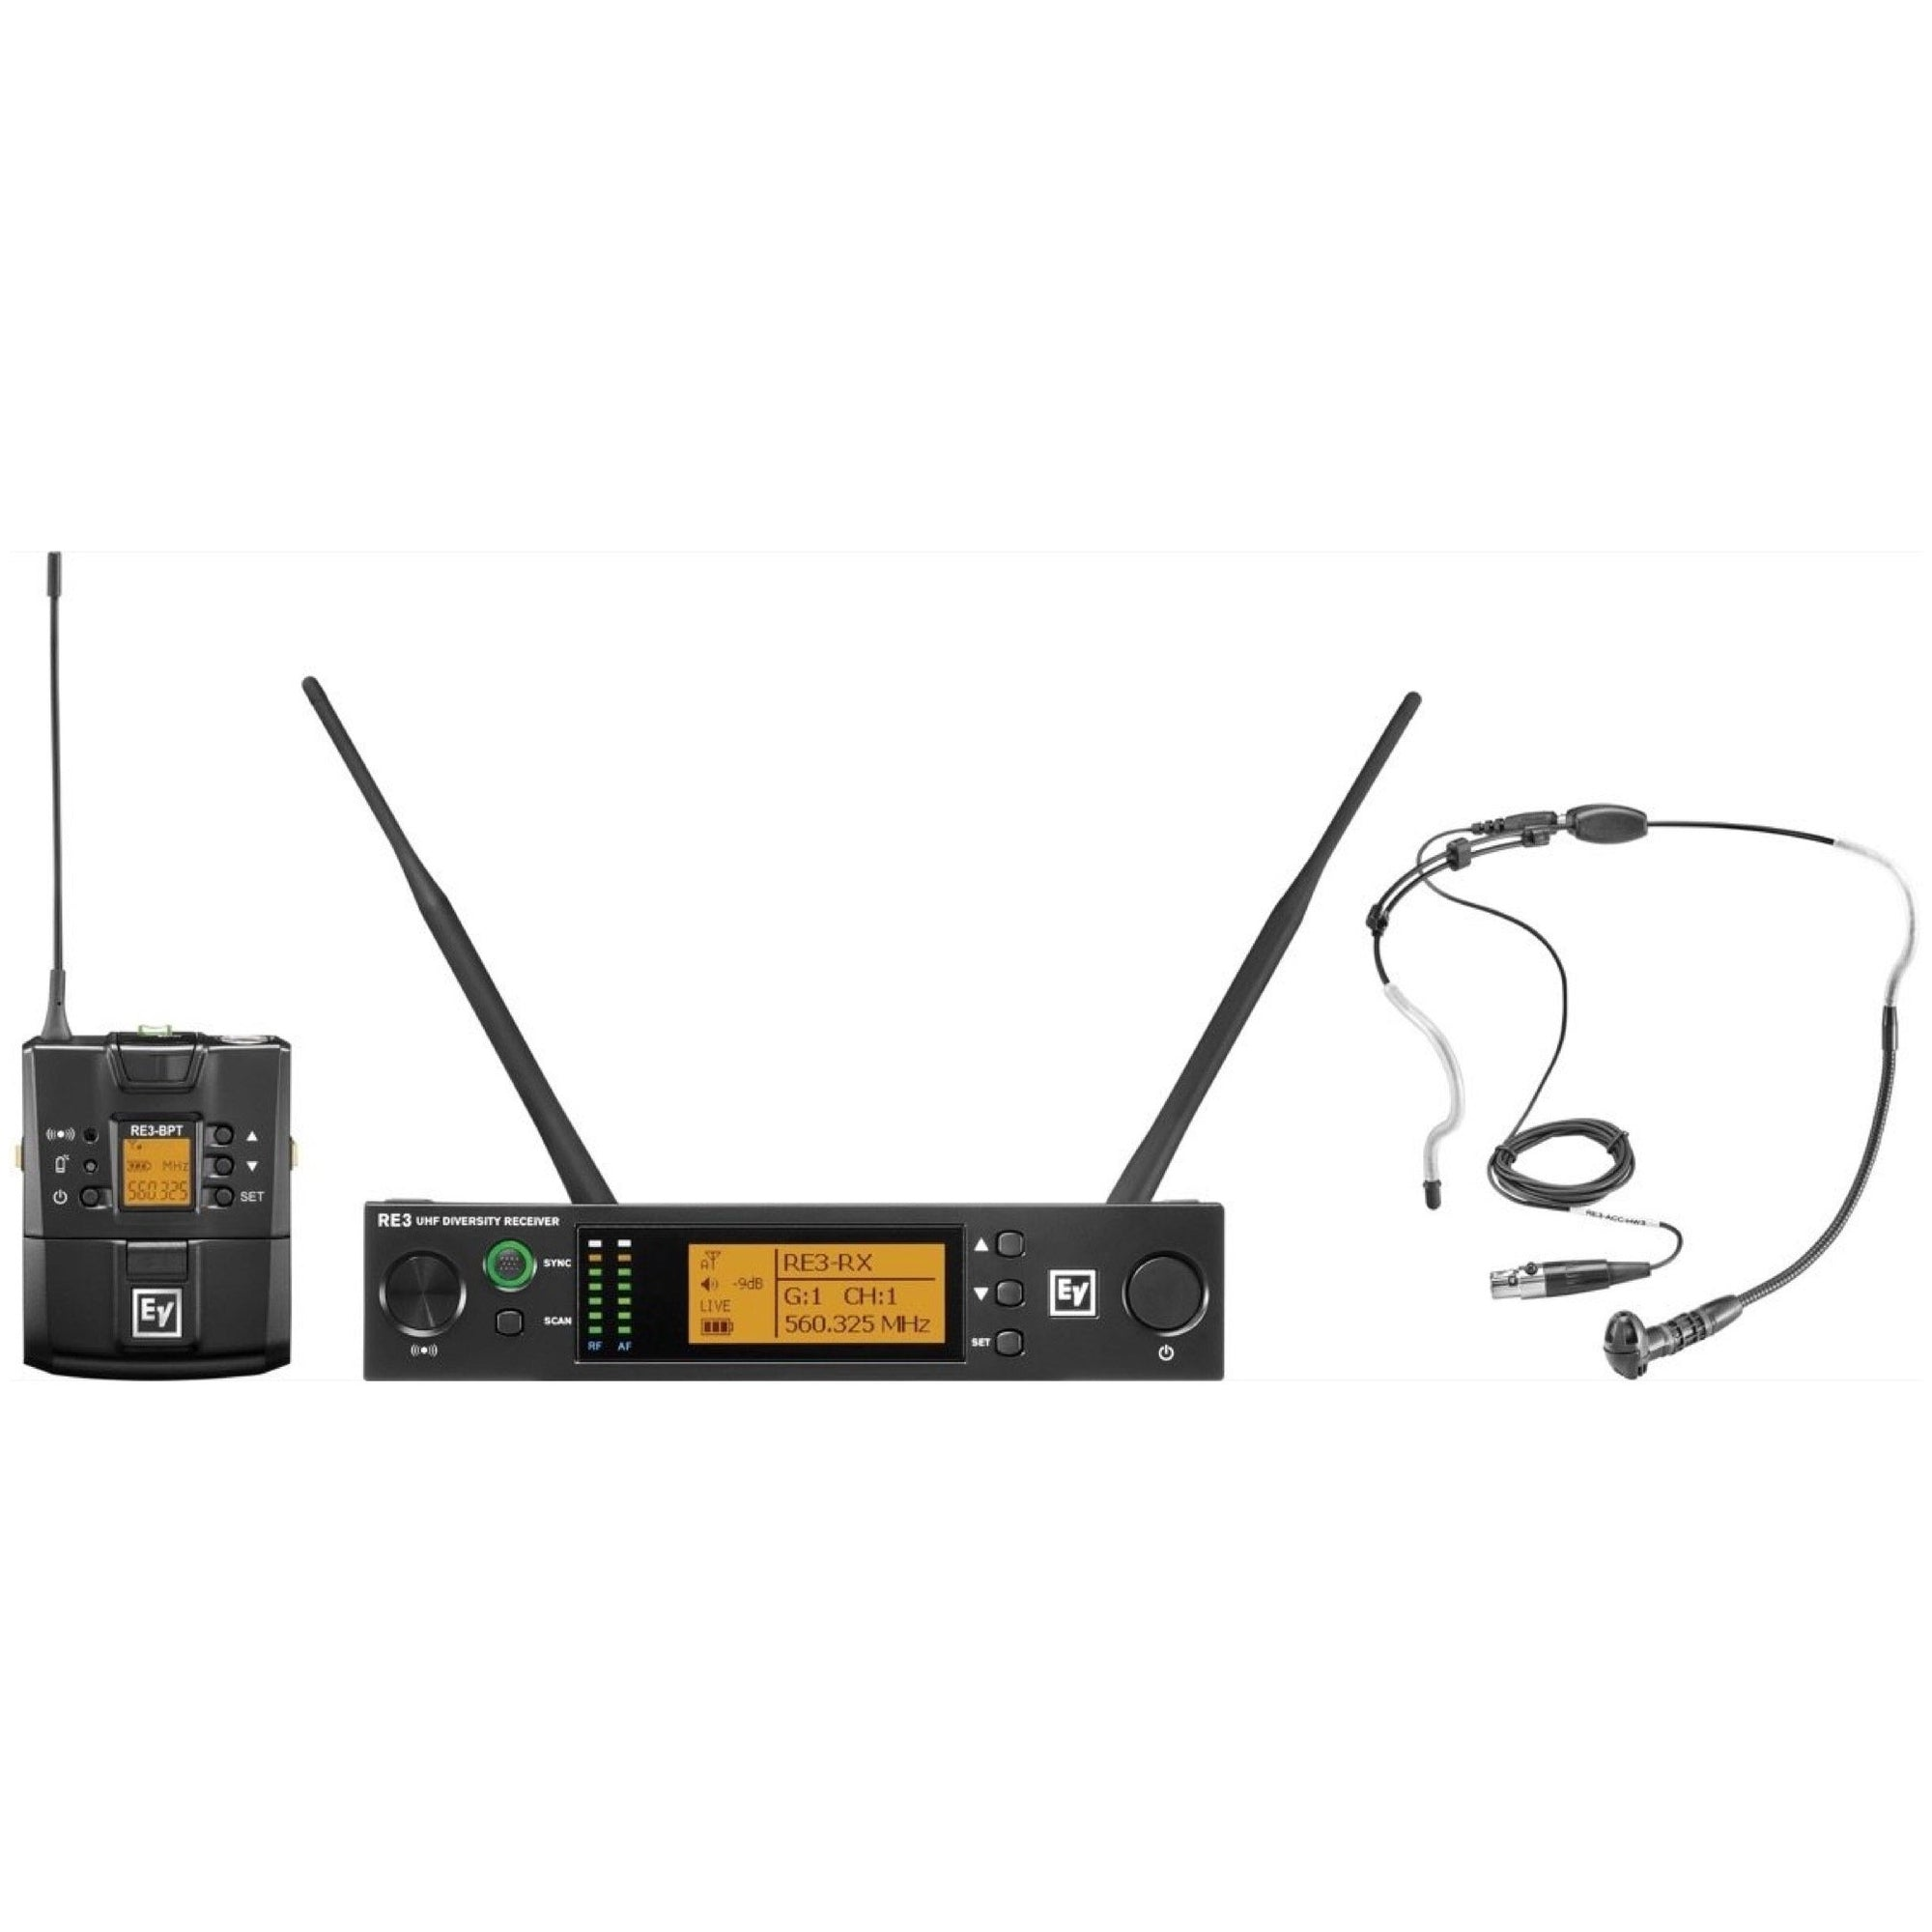 Electro-Voice RE3-BPHW Headset Wireless Microphone System, Band 5H (560-596 MHz)